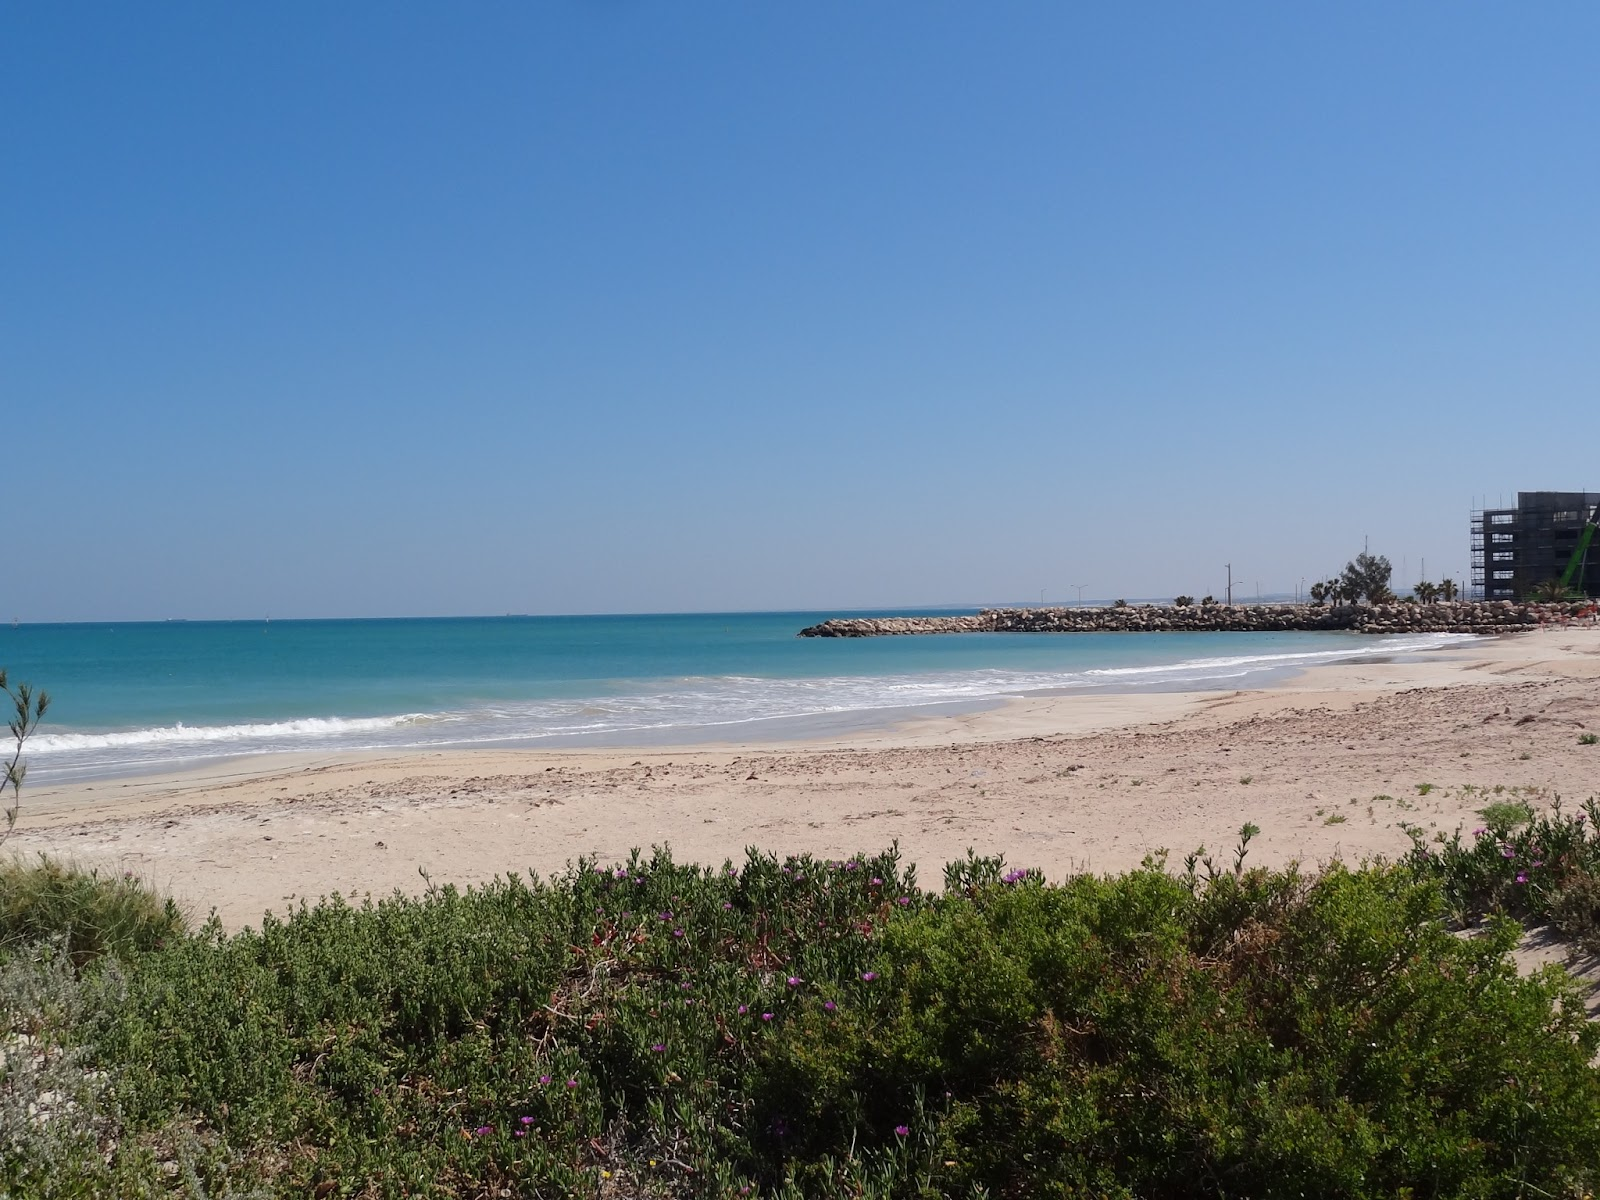 The beach at Geraldton